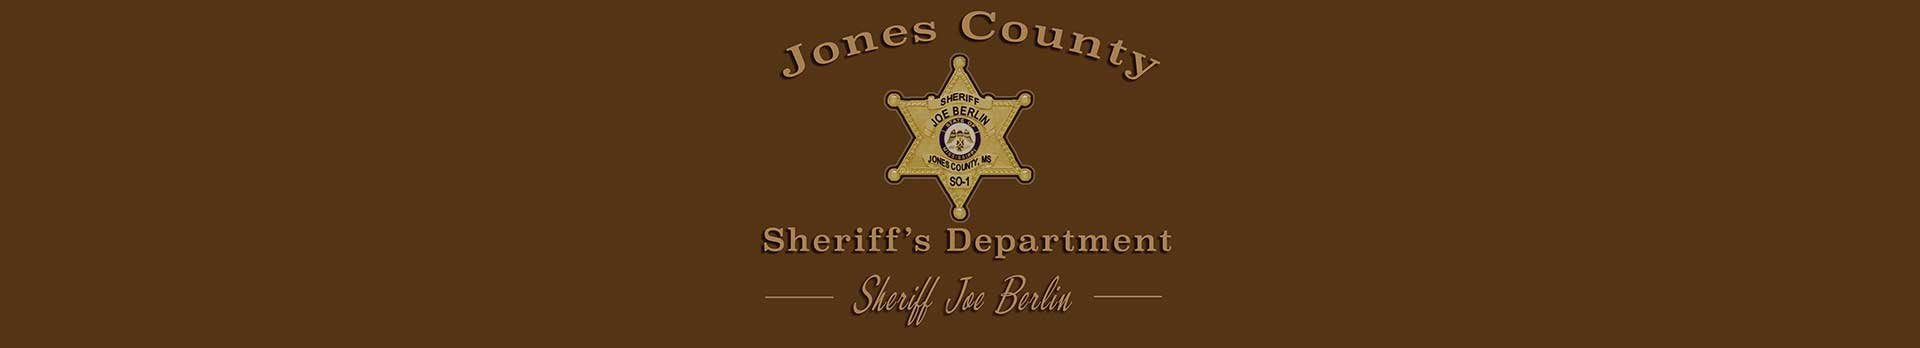 Text displaying Jones County Sheriff's Department and the sheriff, Joe Berlin. The sheriff badge is also featured.